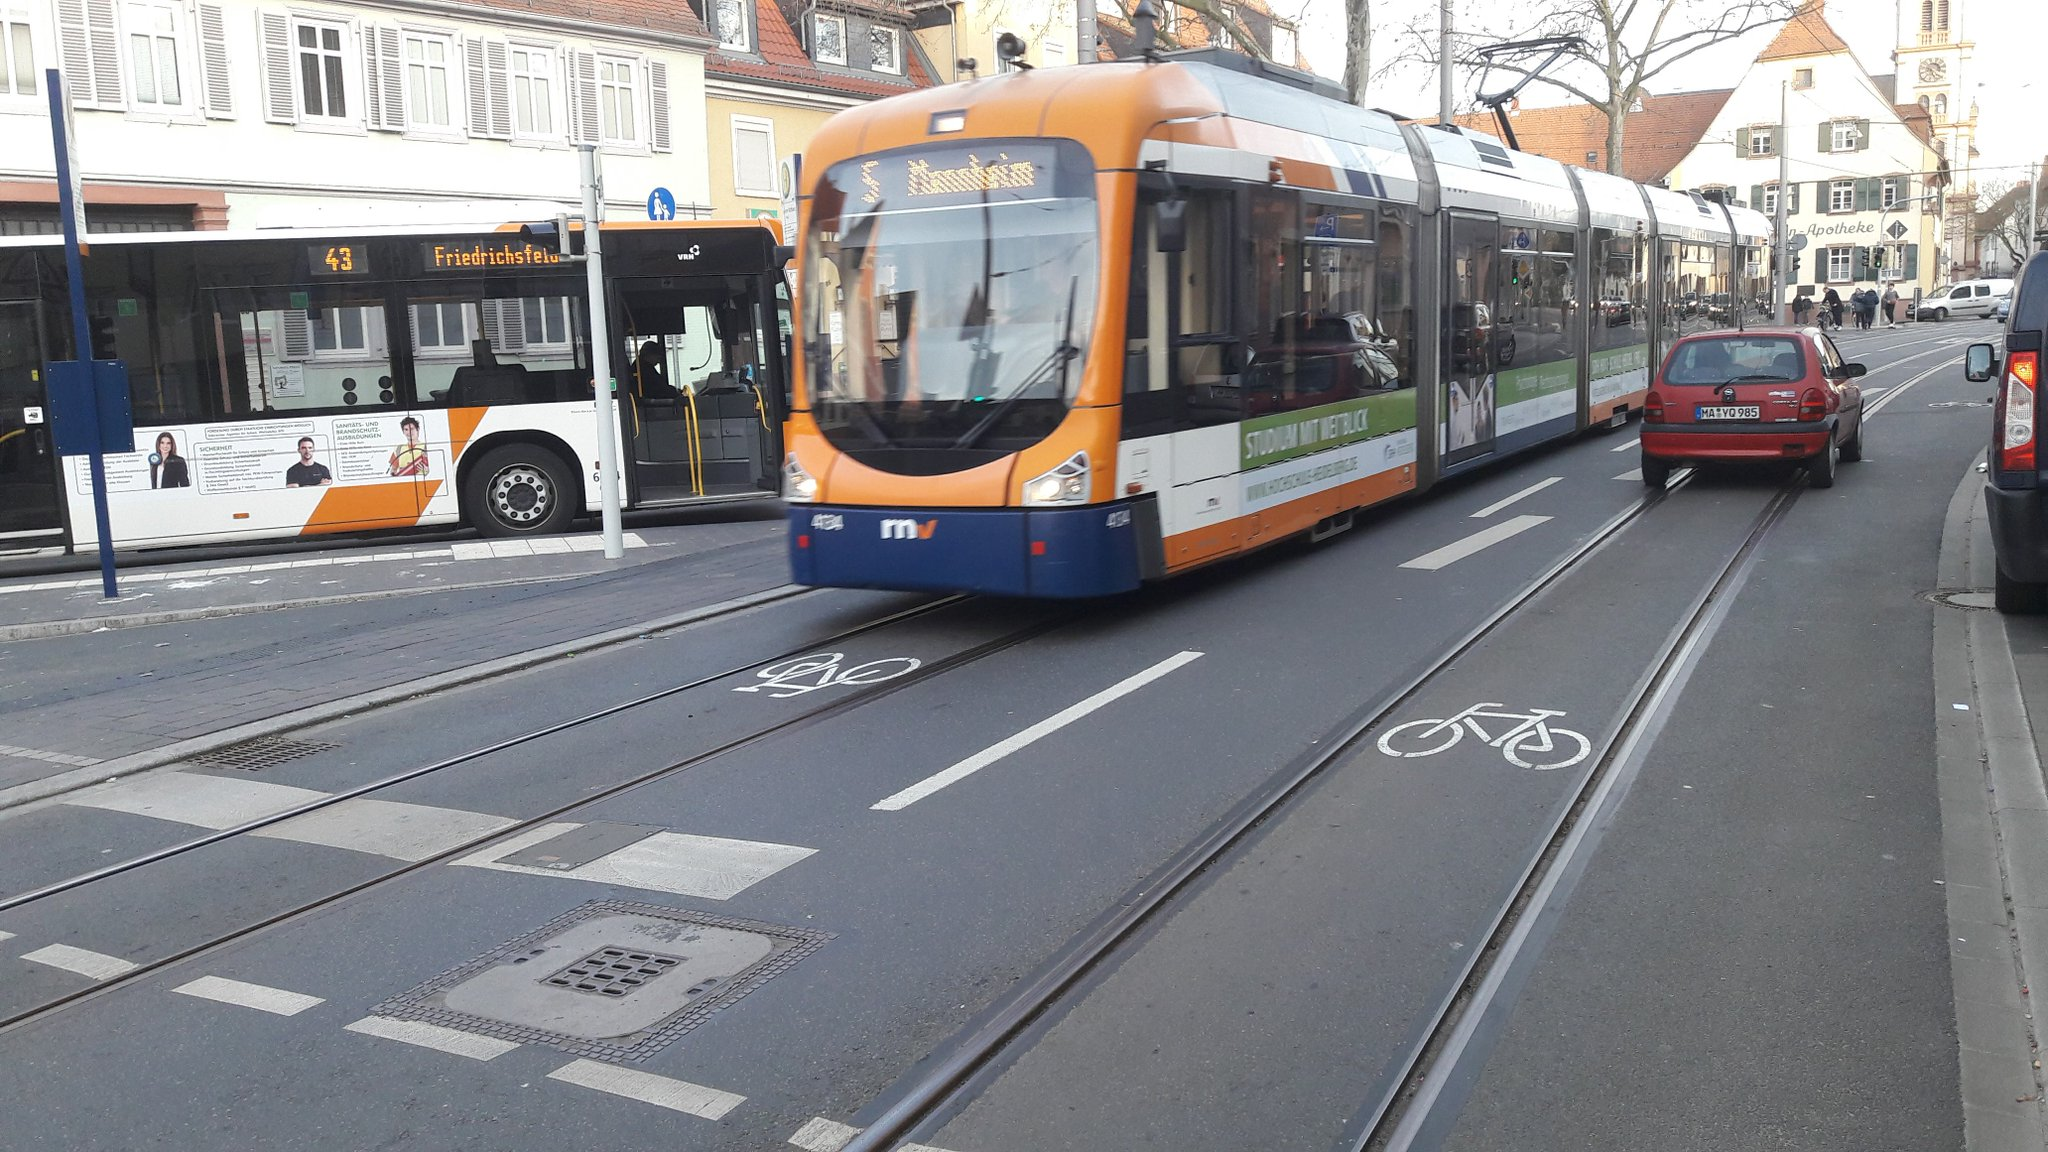 Bus Mannheim Berlin Mannheim In Germany Got New Bike Lanes Yay Bicycling